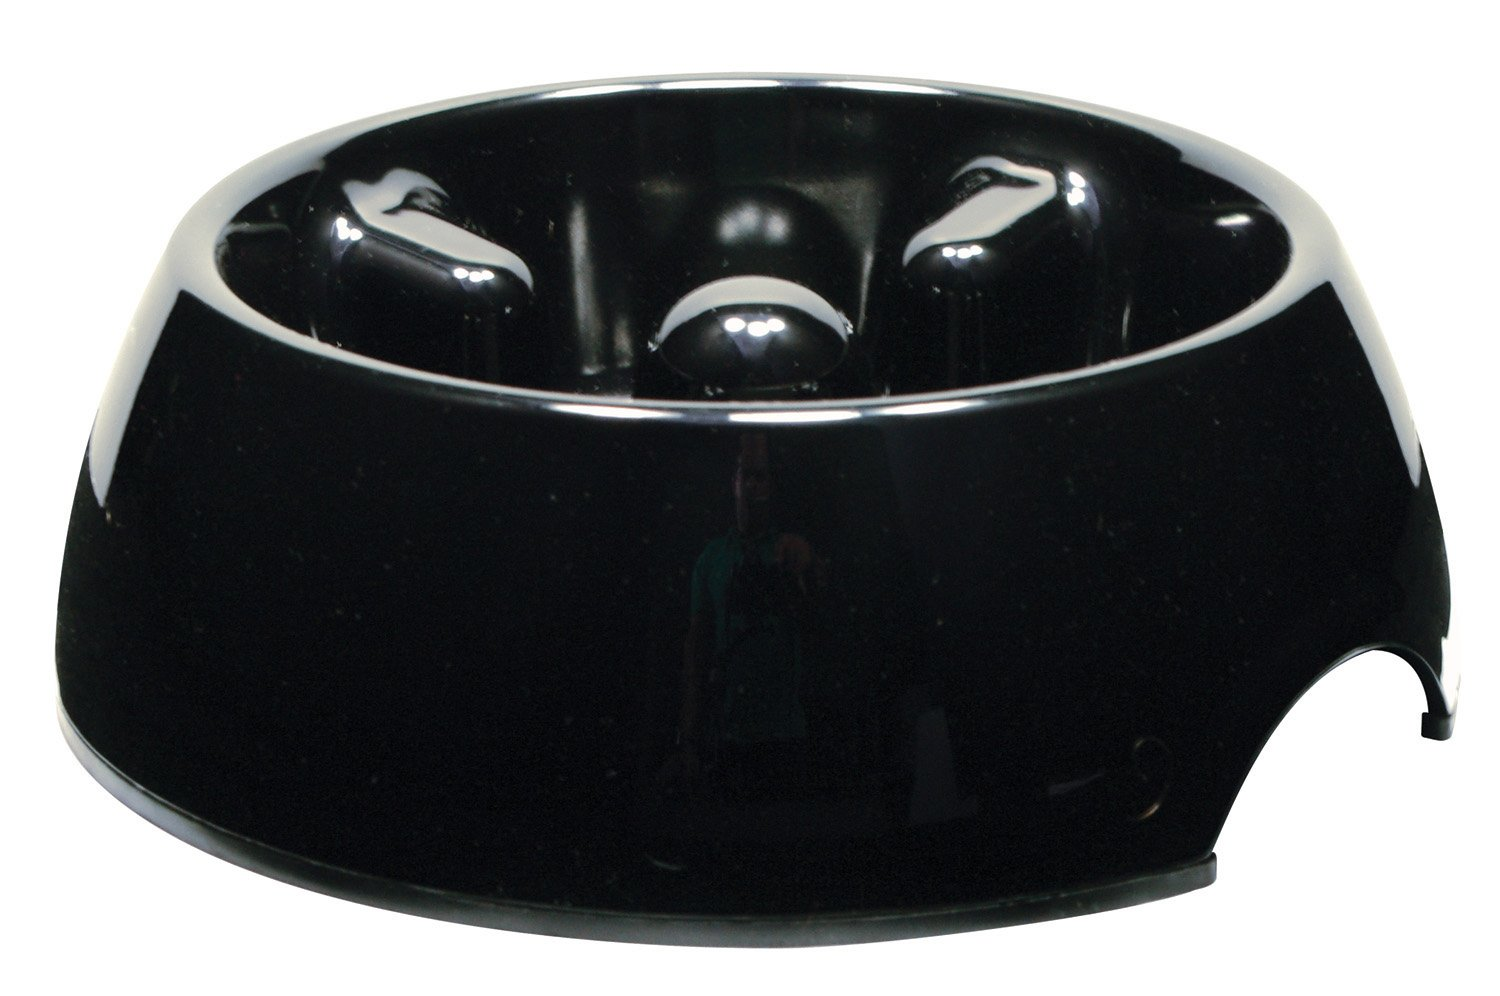 Dogit Go Slow Anti-Gulping Dog Dish, Slow Feeding Dog Bowl Suitable for Wet or Dry Food, X-Small, Black